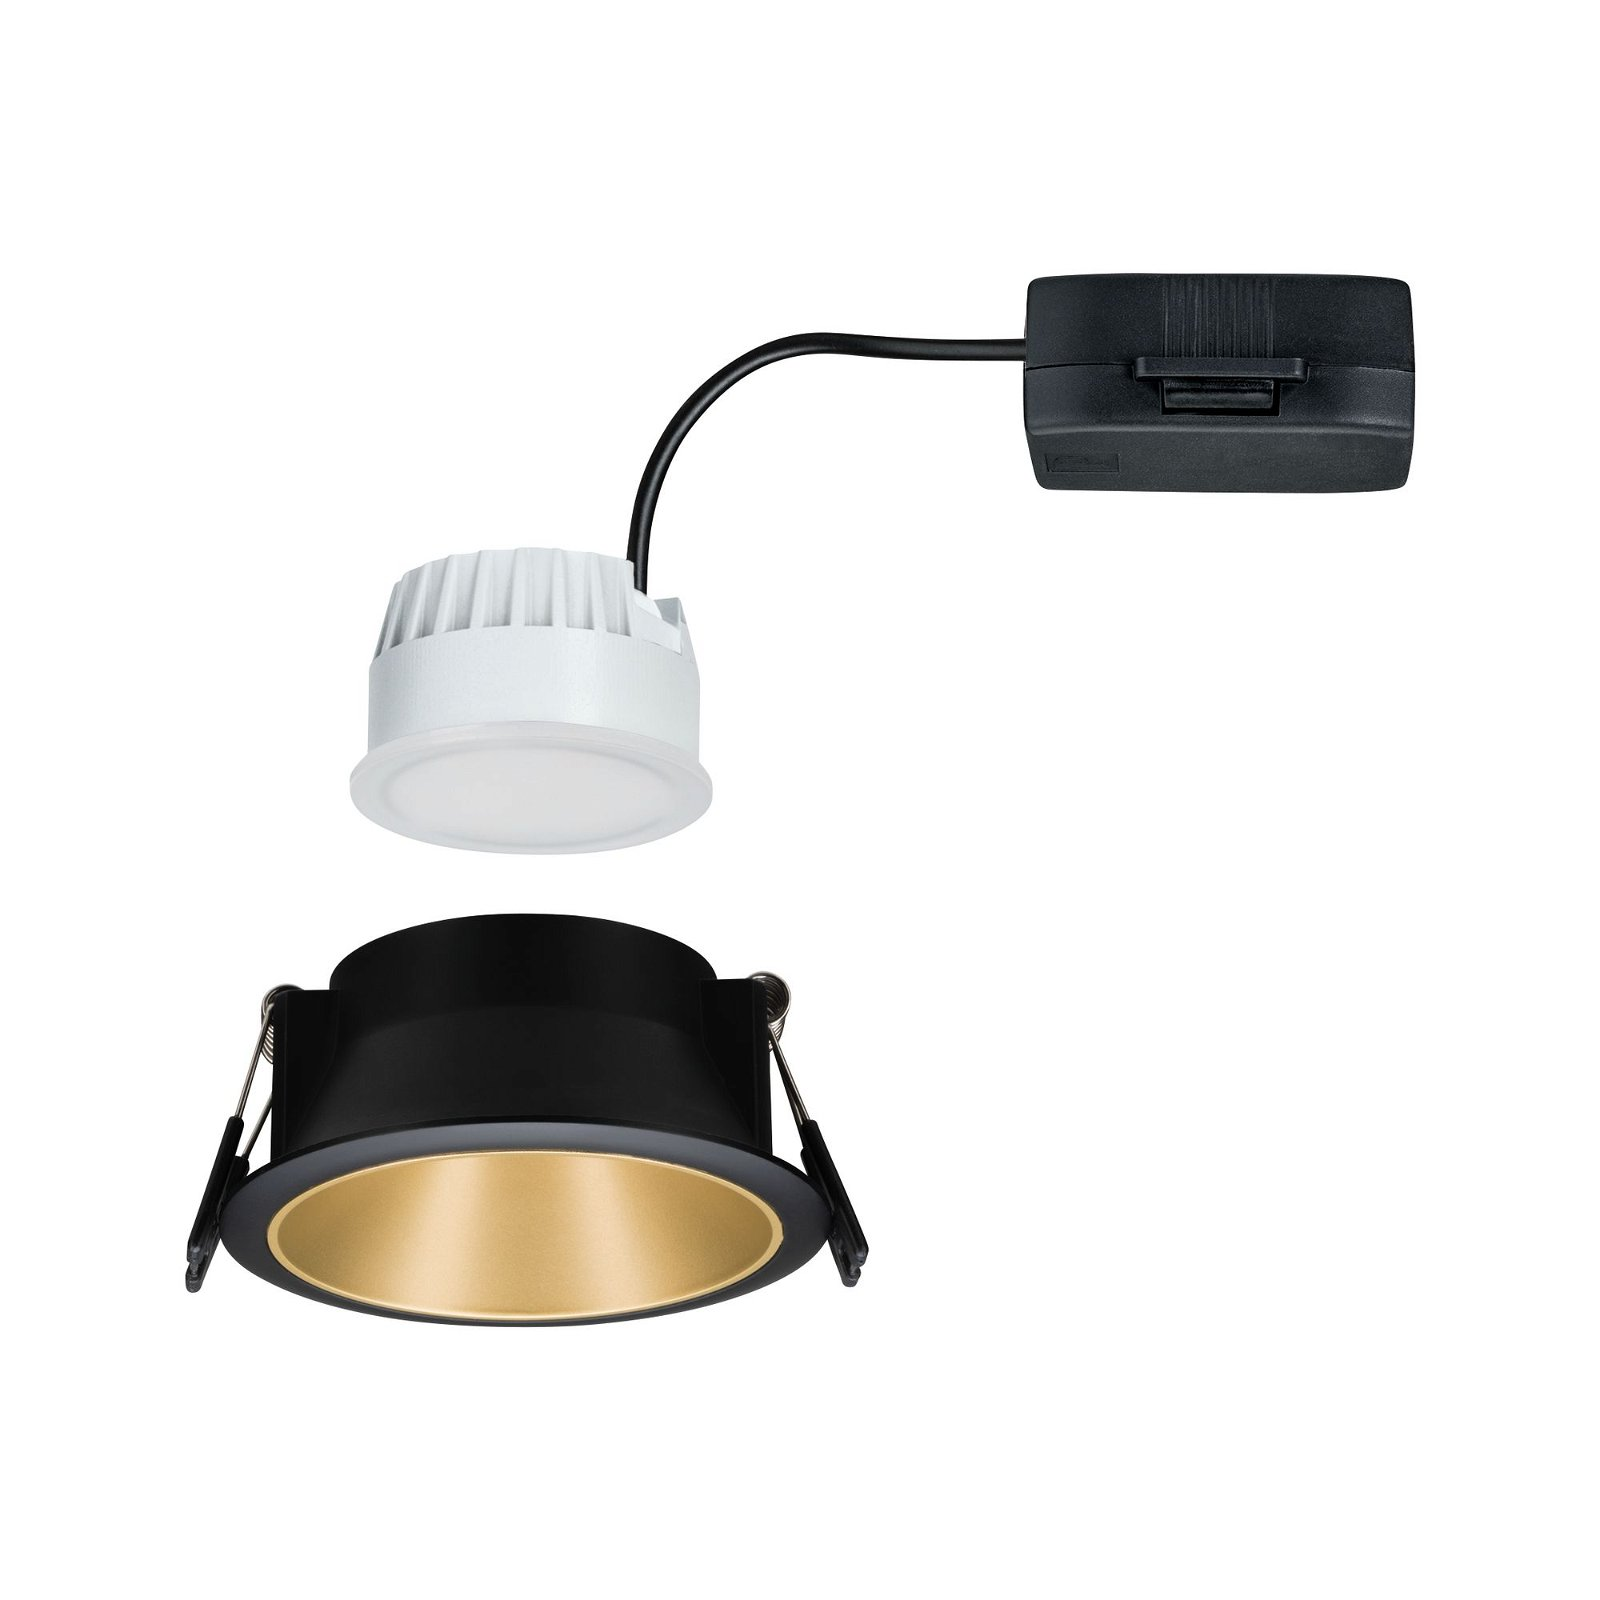 LED Recessed luminaire Cole IP44 round 88mm Coin 6,5W 460lm 230V 2700K Black/Gold matt